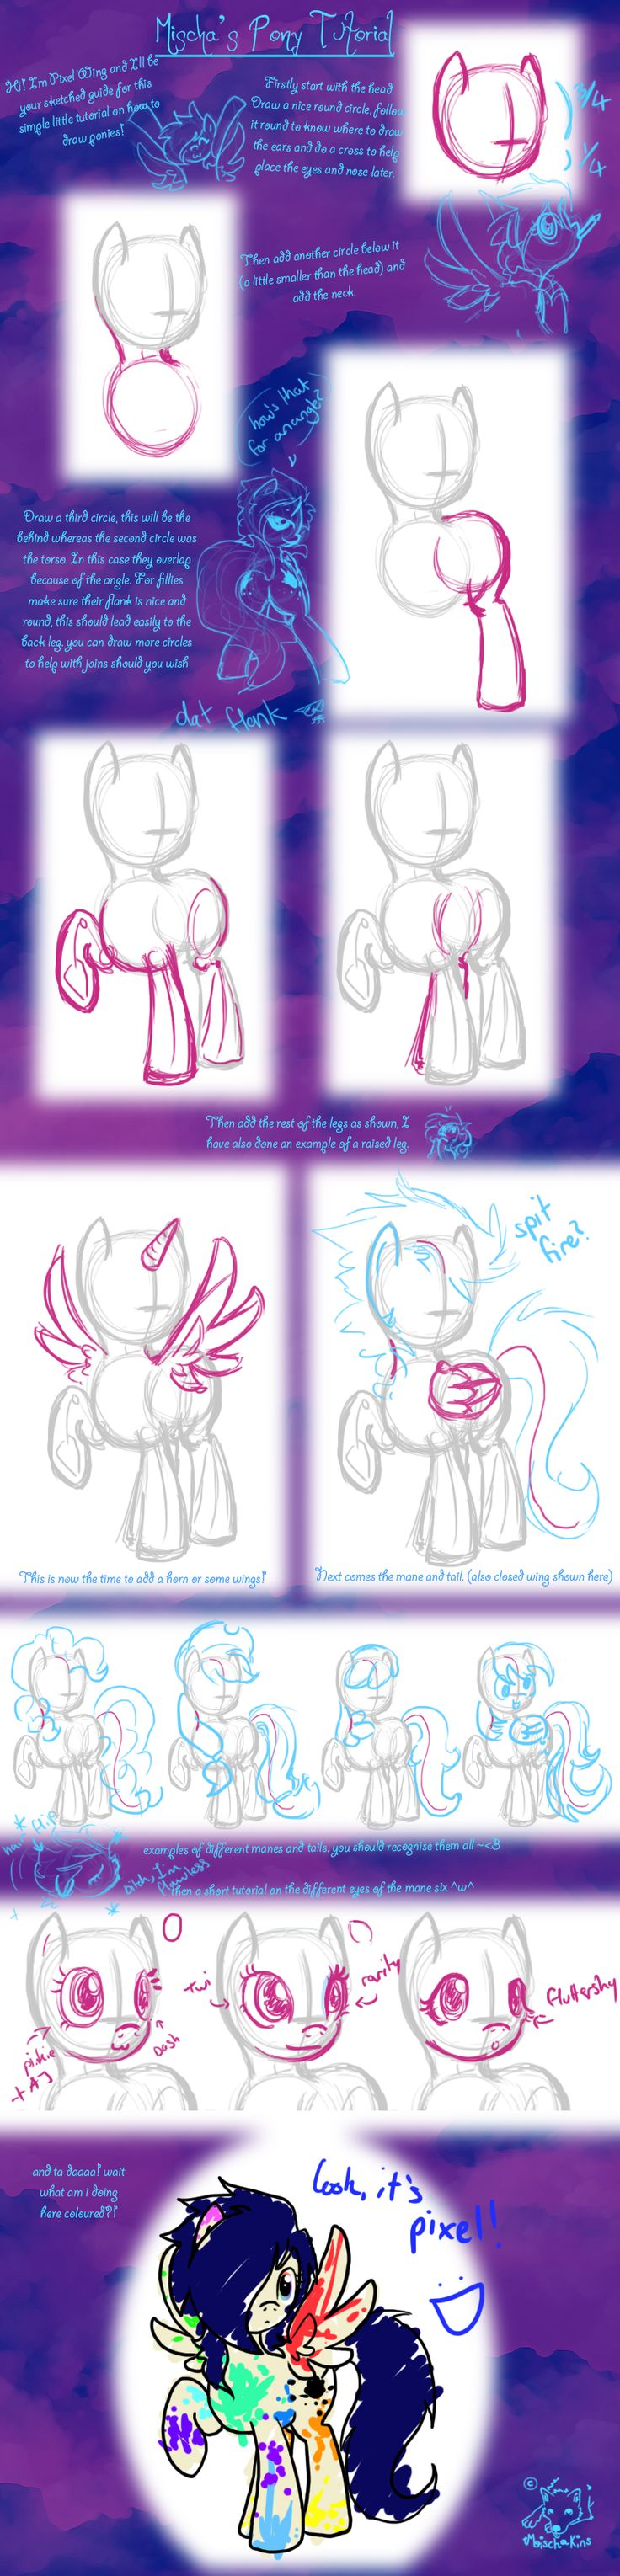 How to Pony by mischakins on deviantART